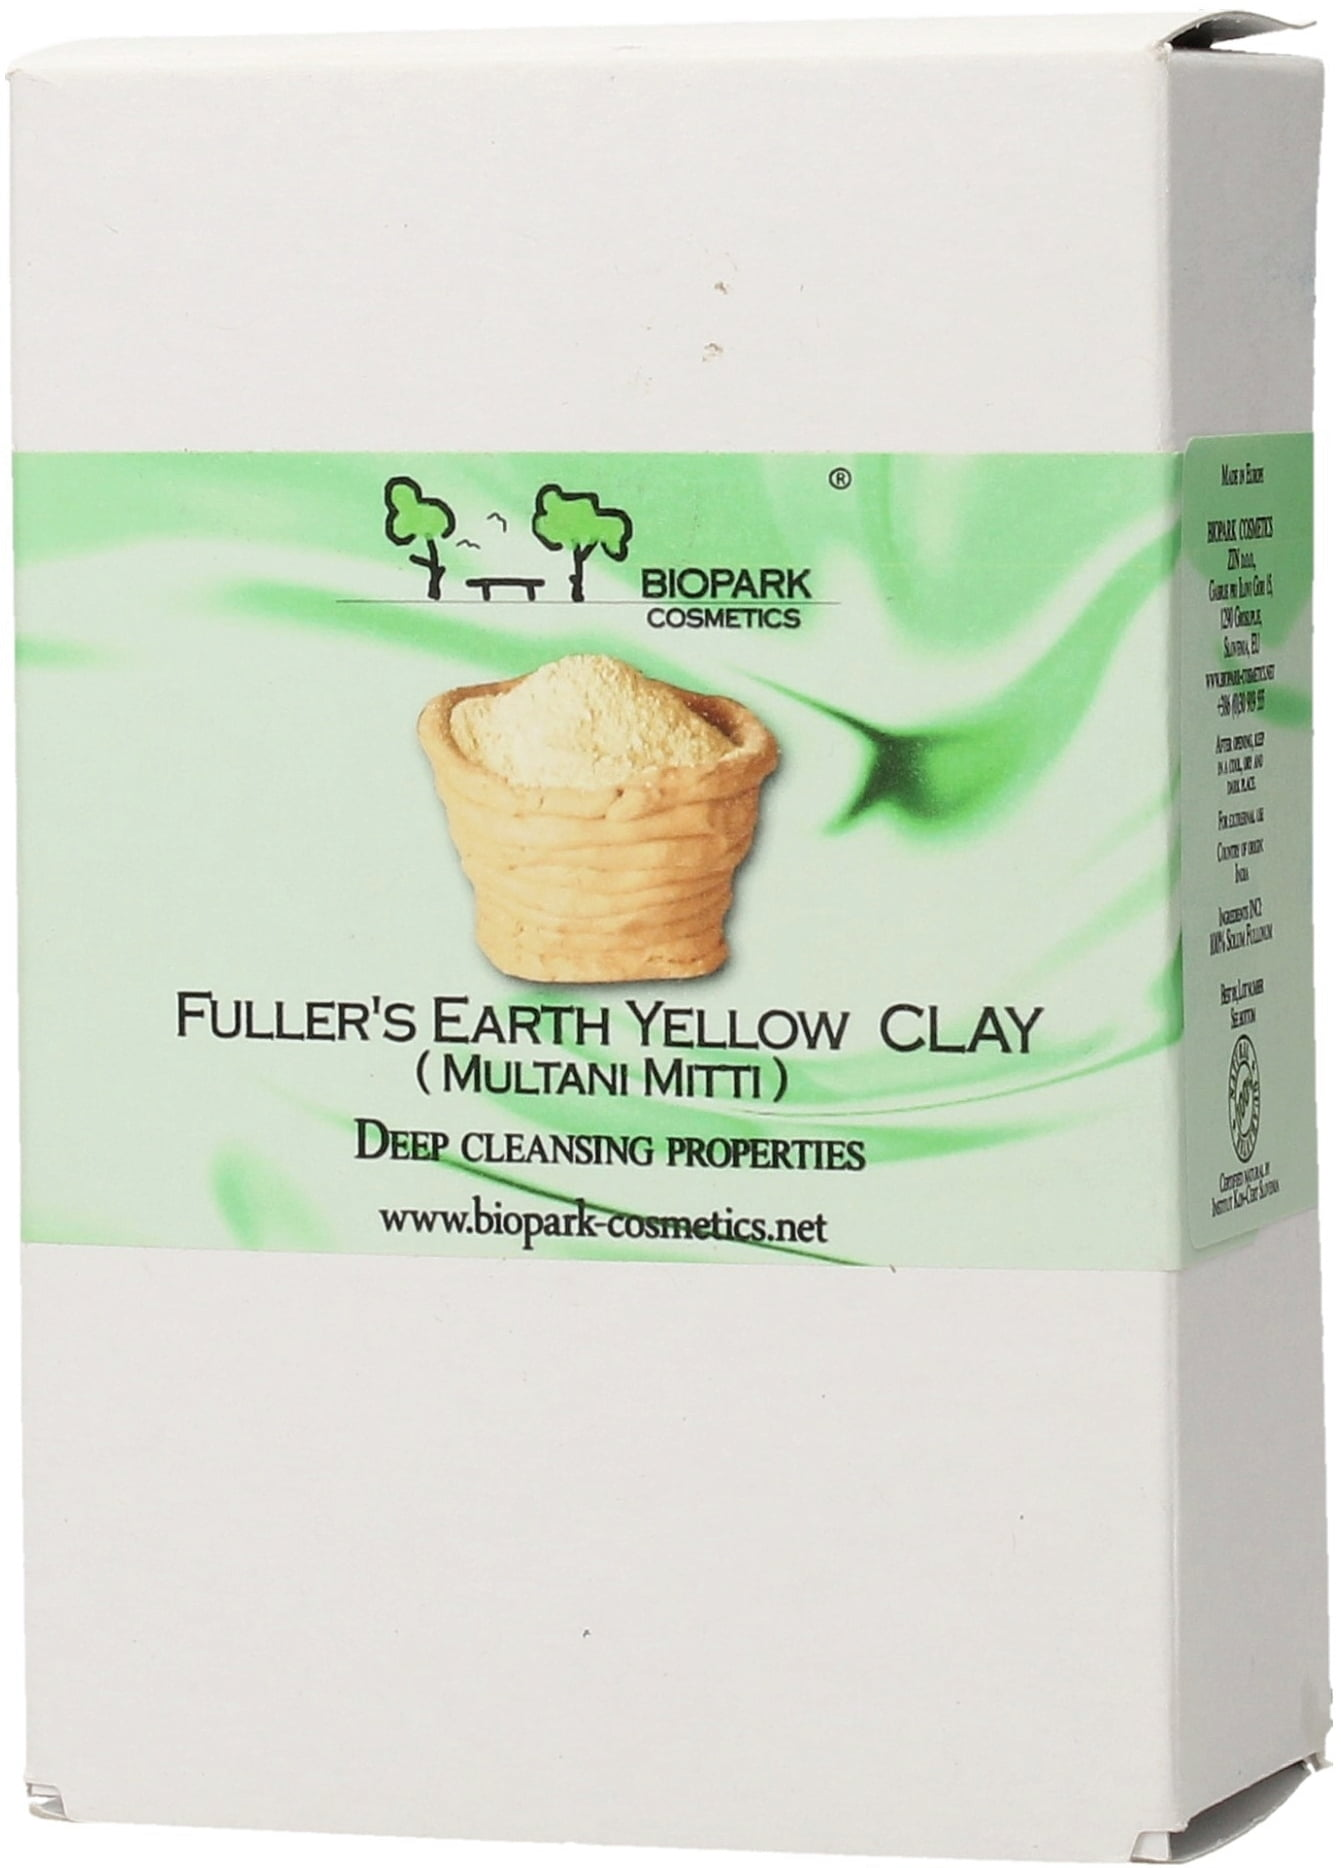 Biopark Cosmetics Fuller's Earth Yellow Clay - 100 g von Biopark Cosmetics